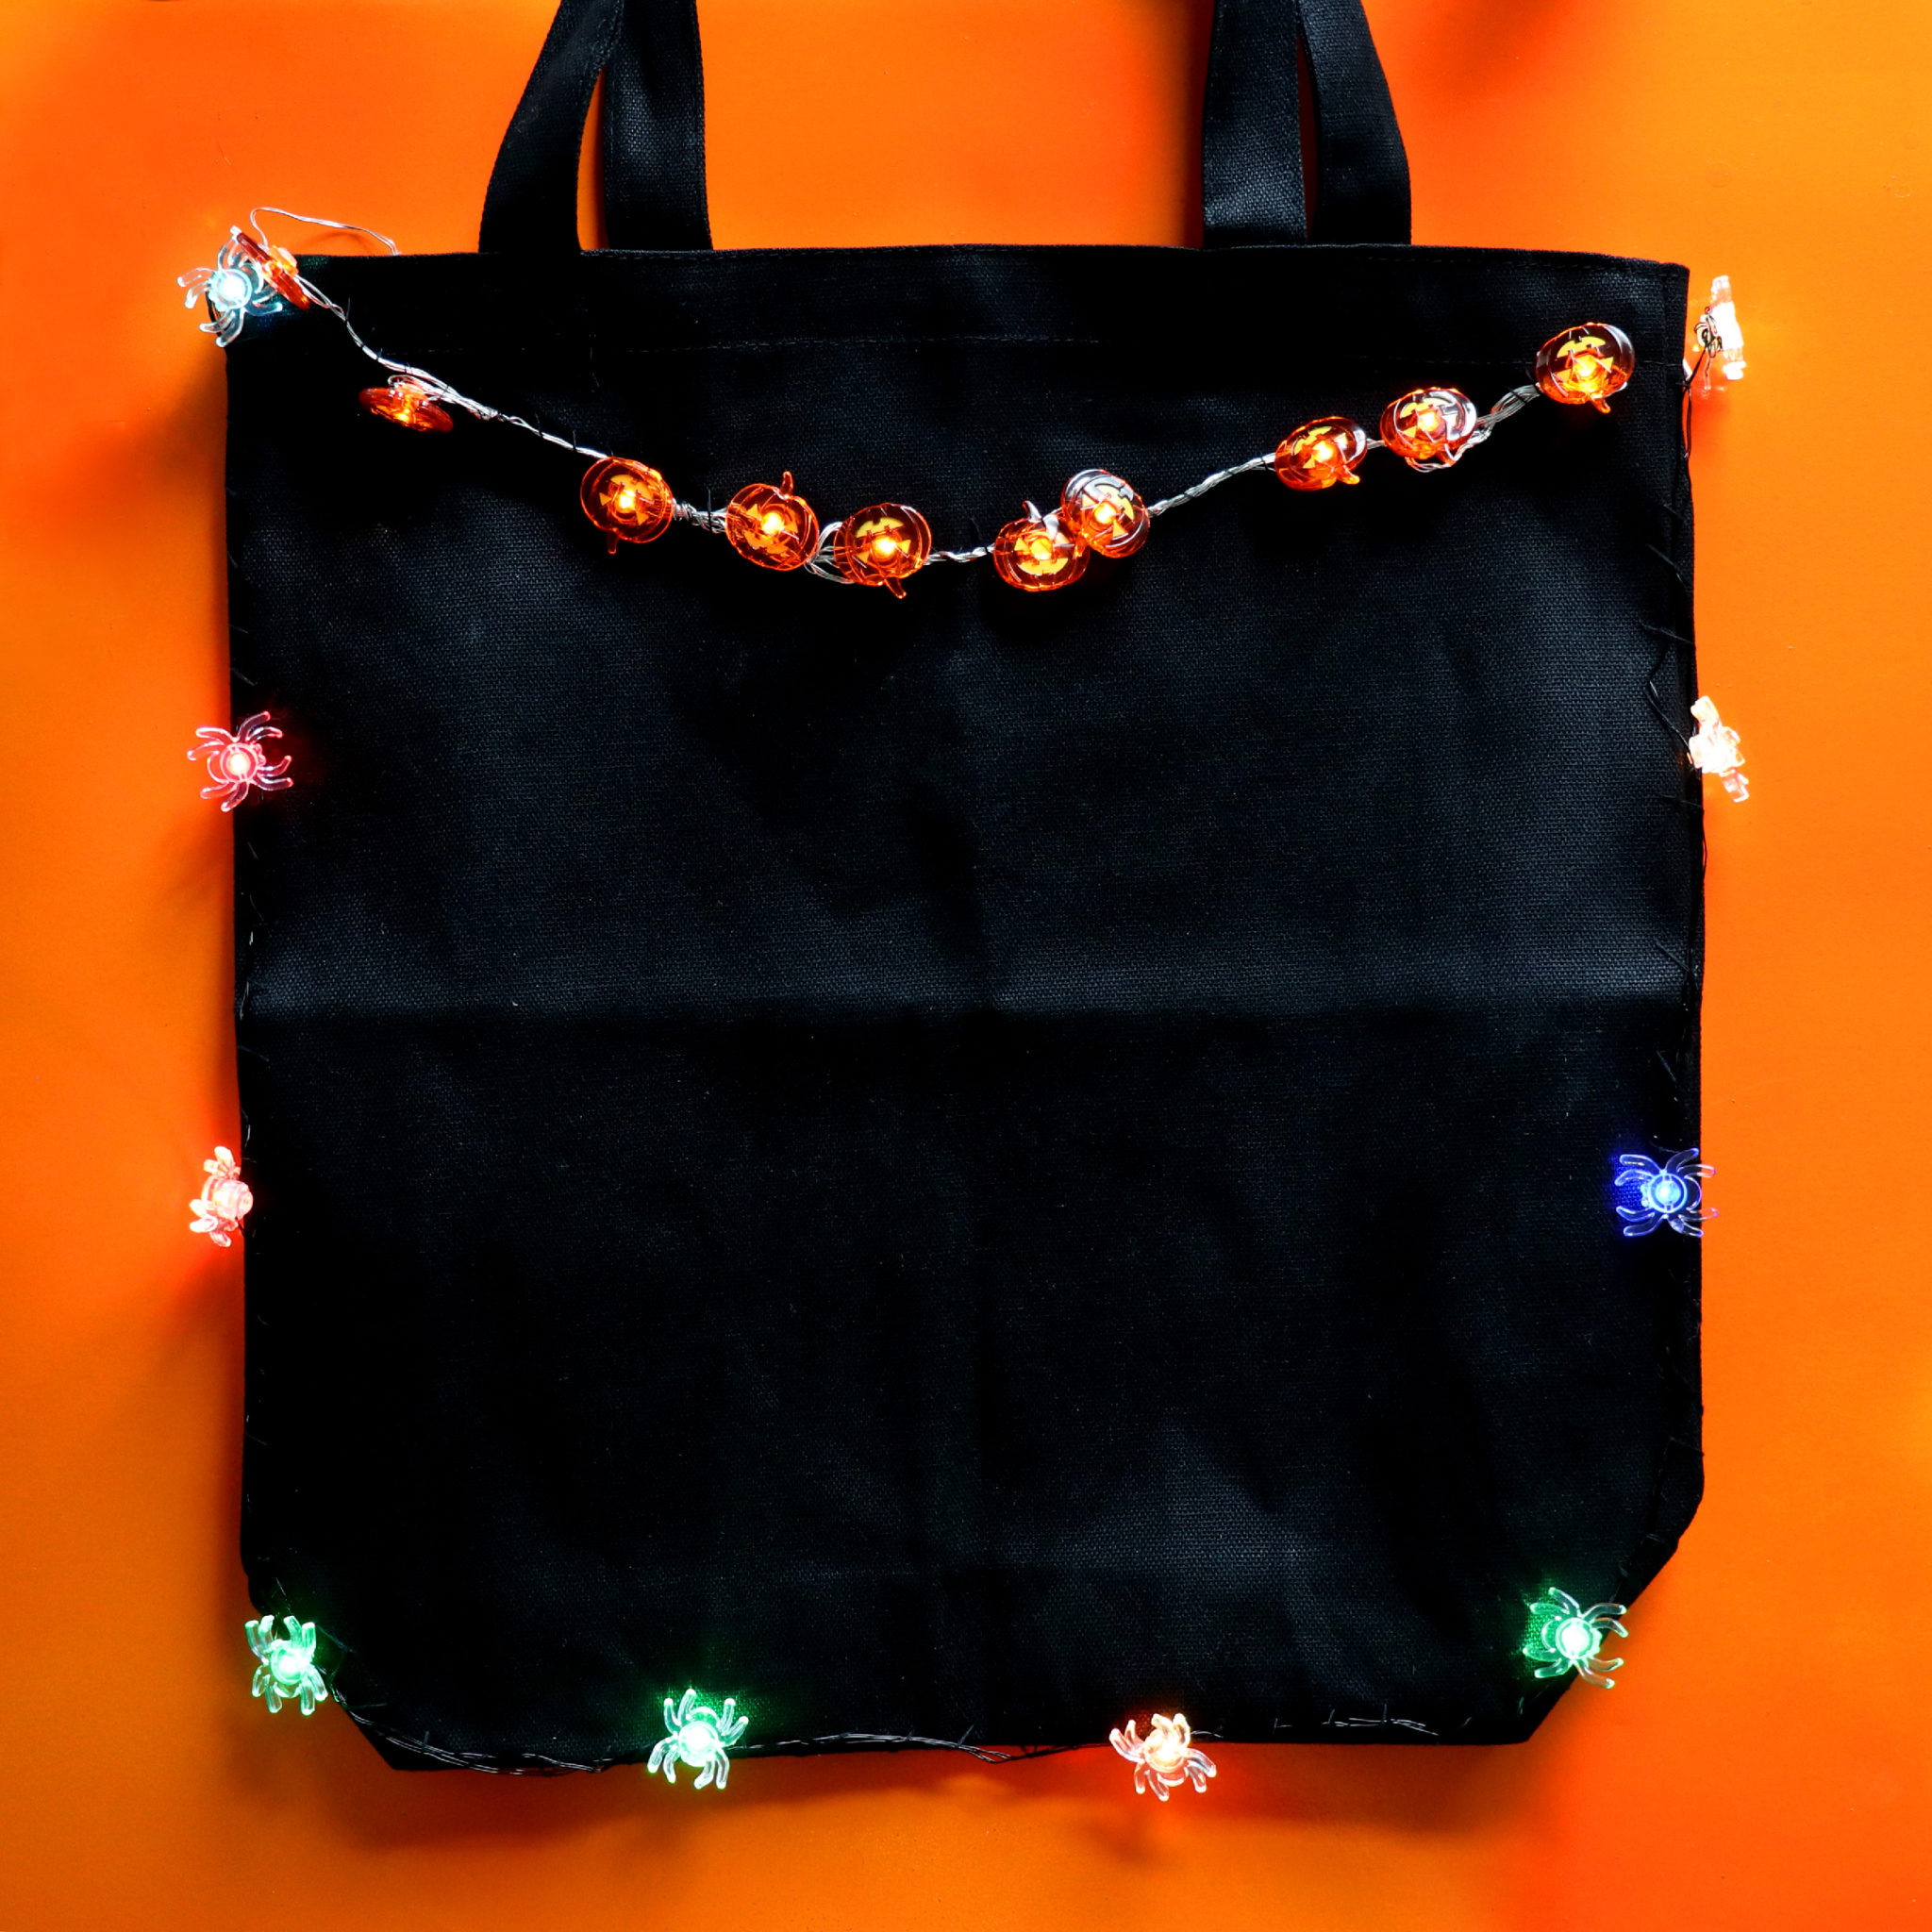 light_up_bag